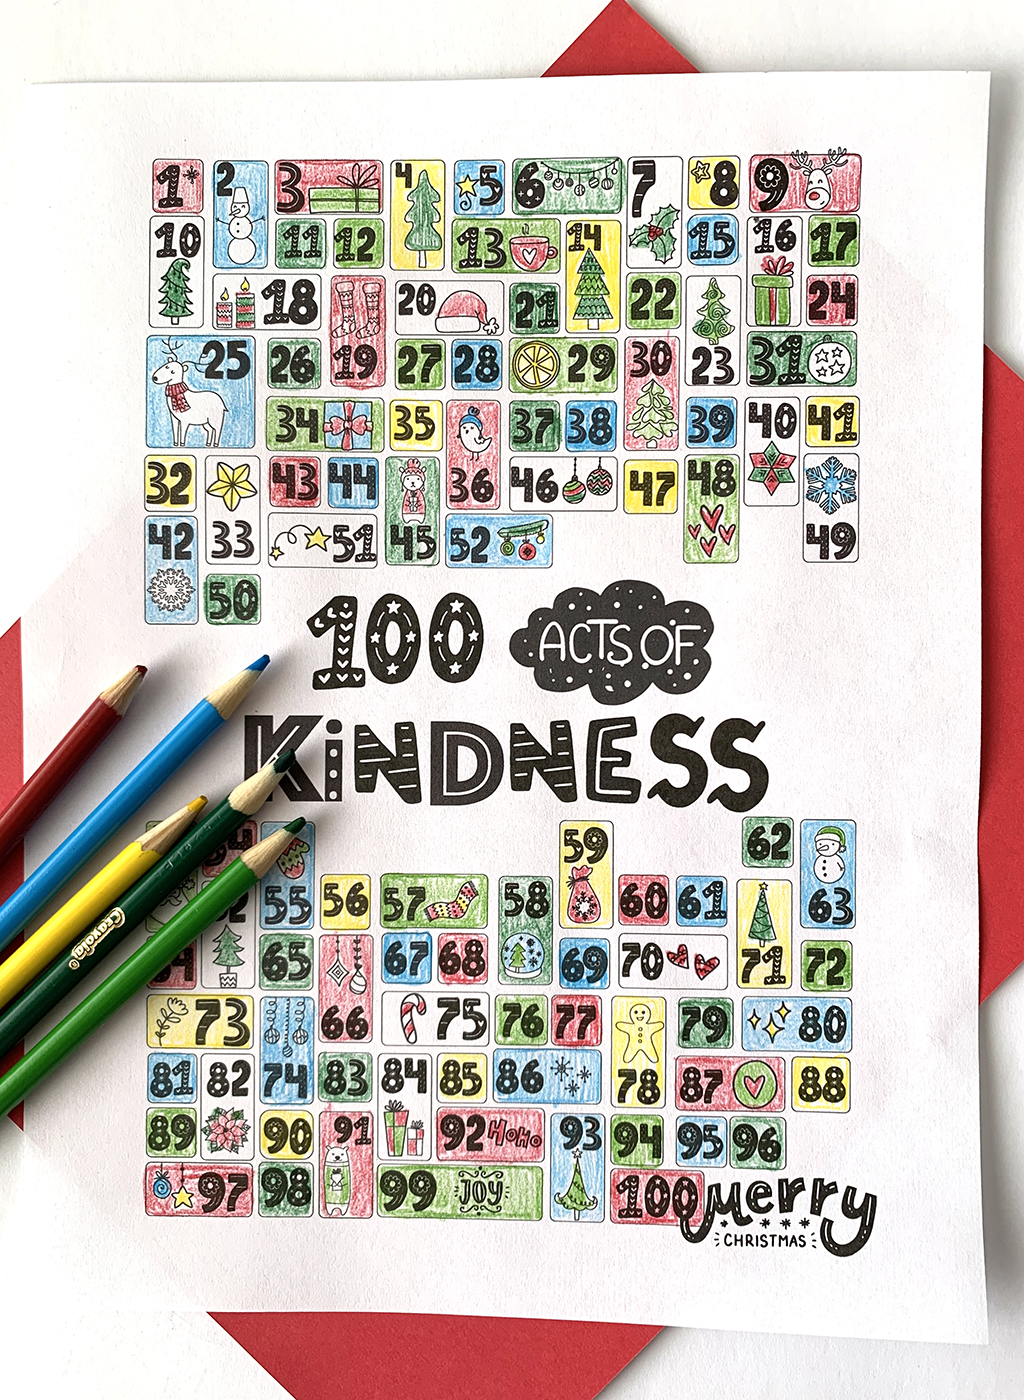 100 Acts of Kindness Coloring Countdown